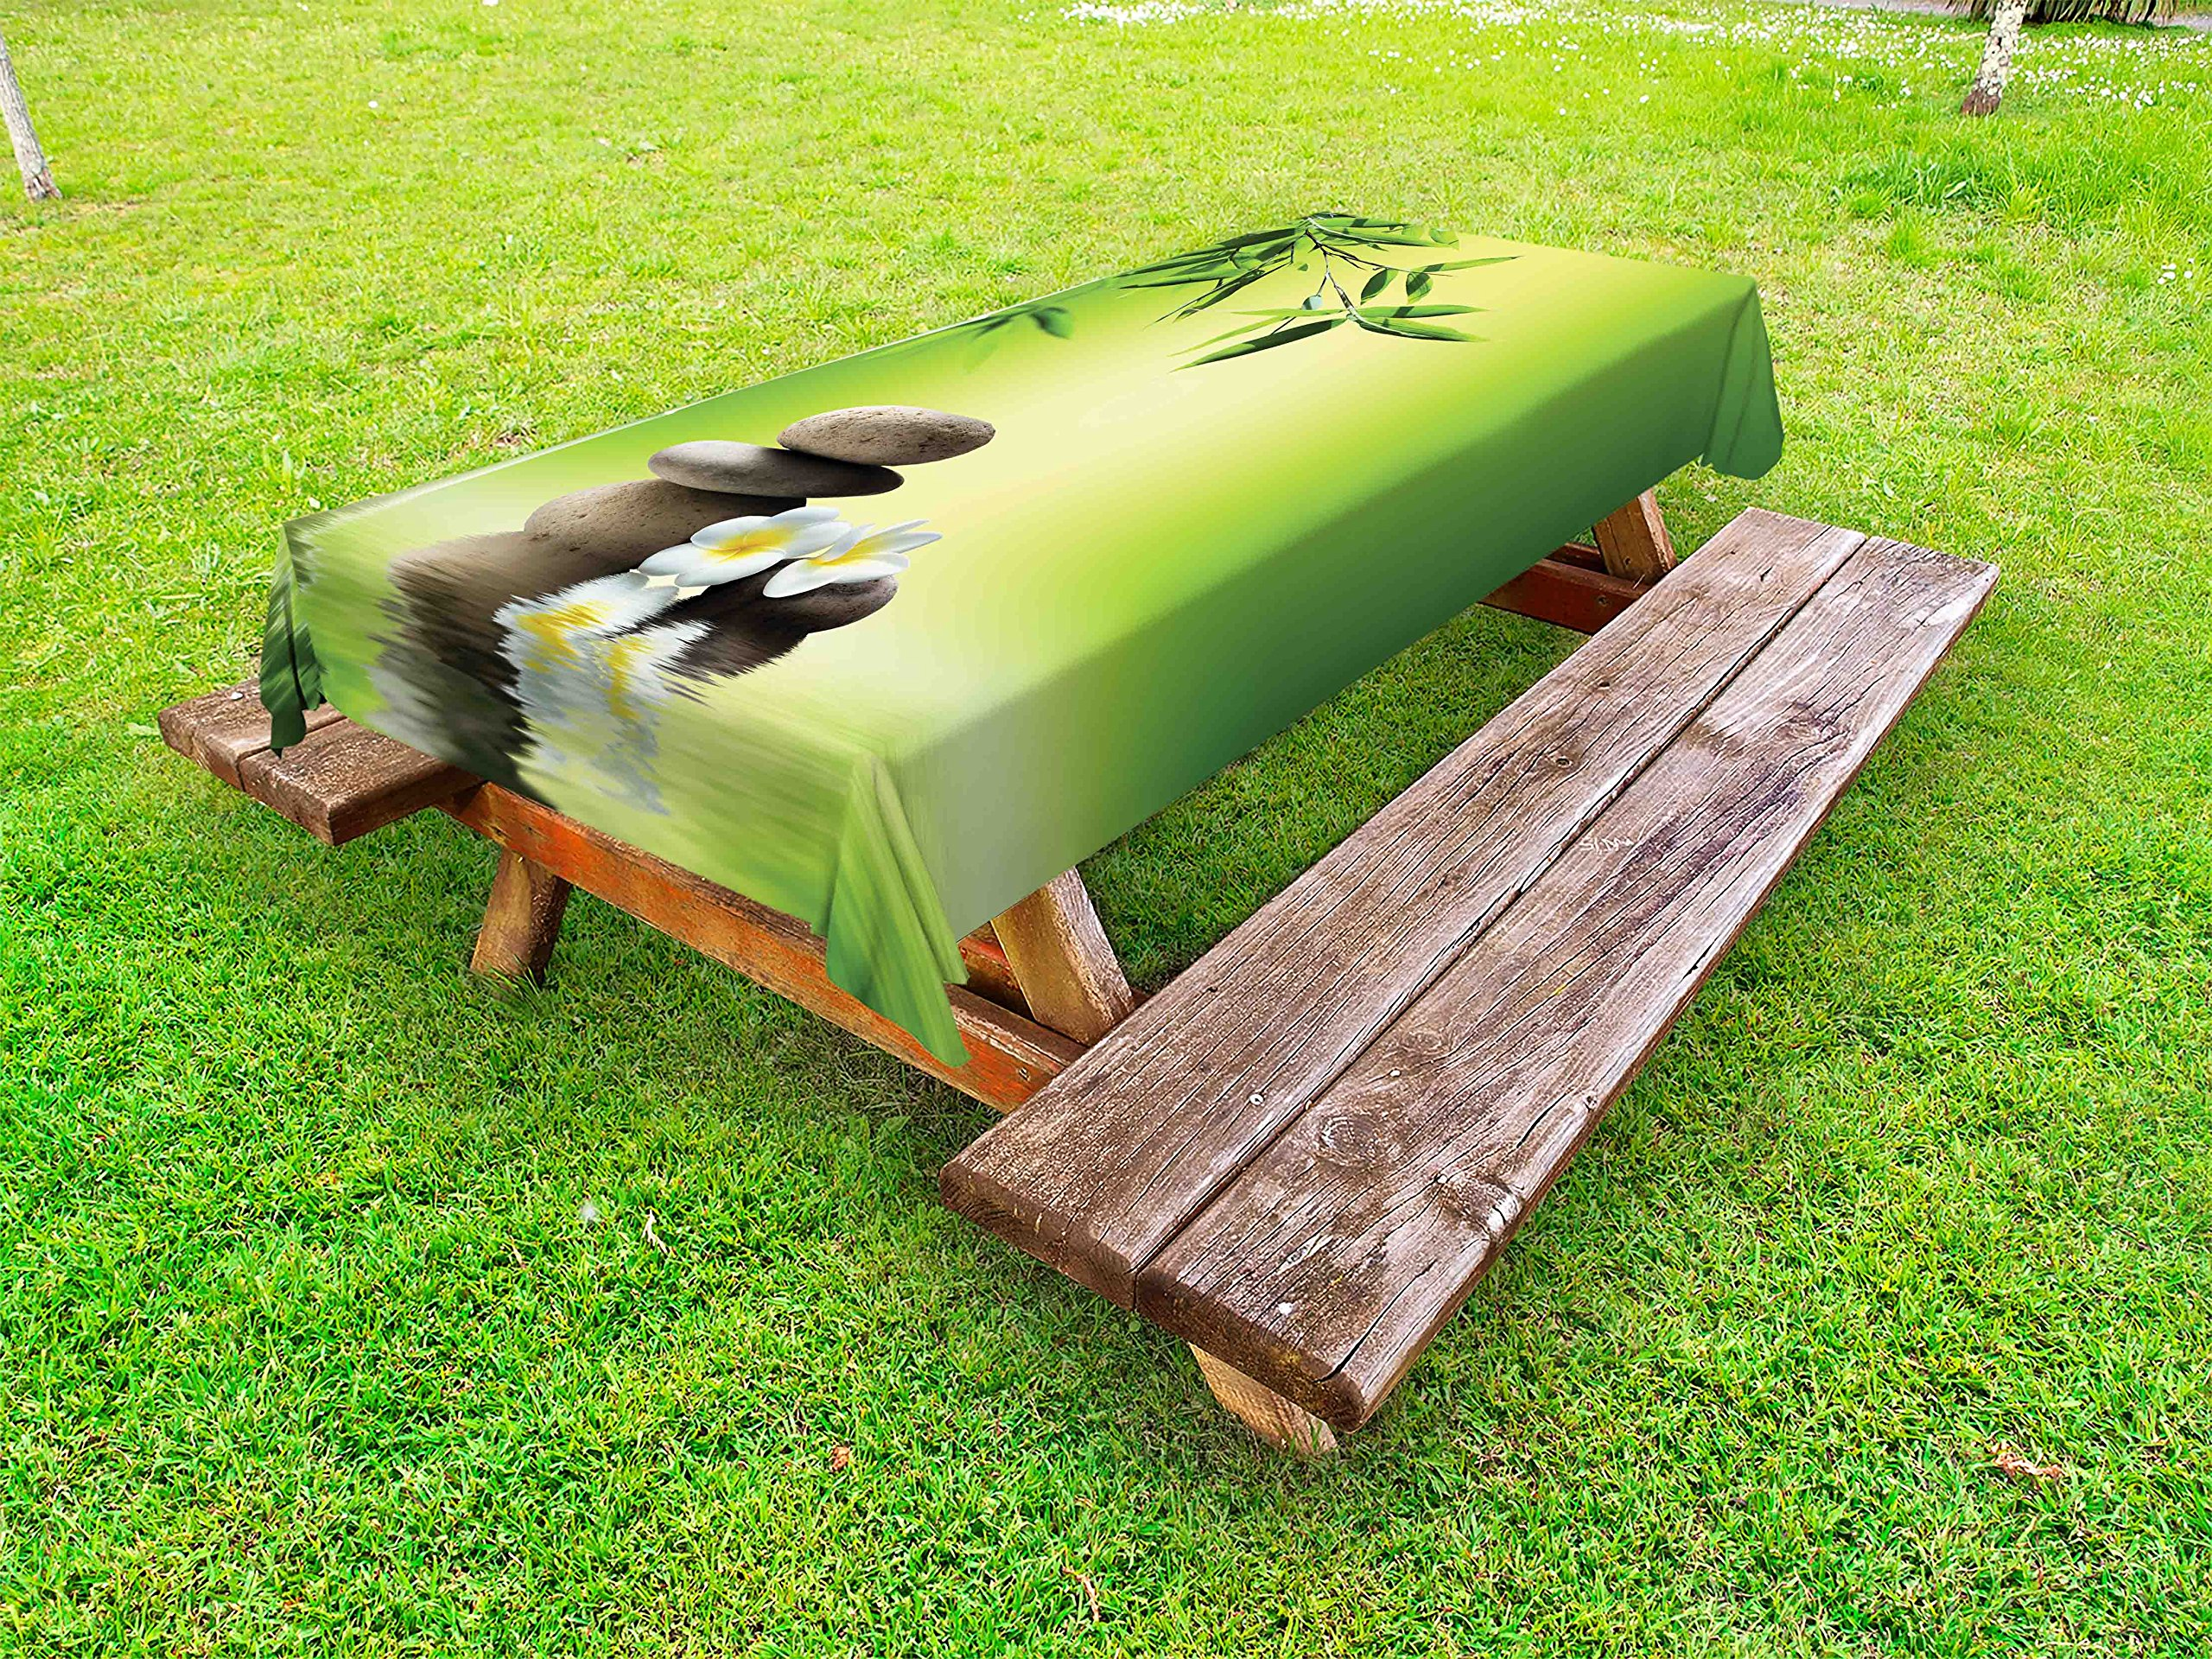 Lunarable Spa Outdoor Tablecloth, Japanese Therapy Relaxation Stones Frangipani Flowers Bamboo Tree Healthcare Theme, Decorative Washable Picnic Table Cloth, 58 X 120 inches, Green Yellow